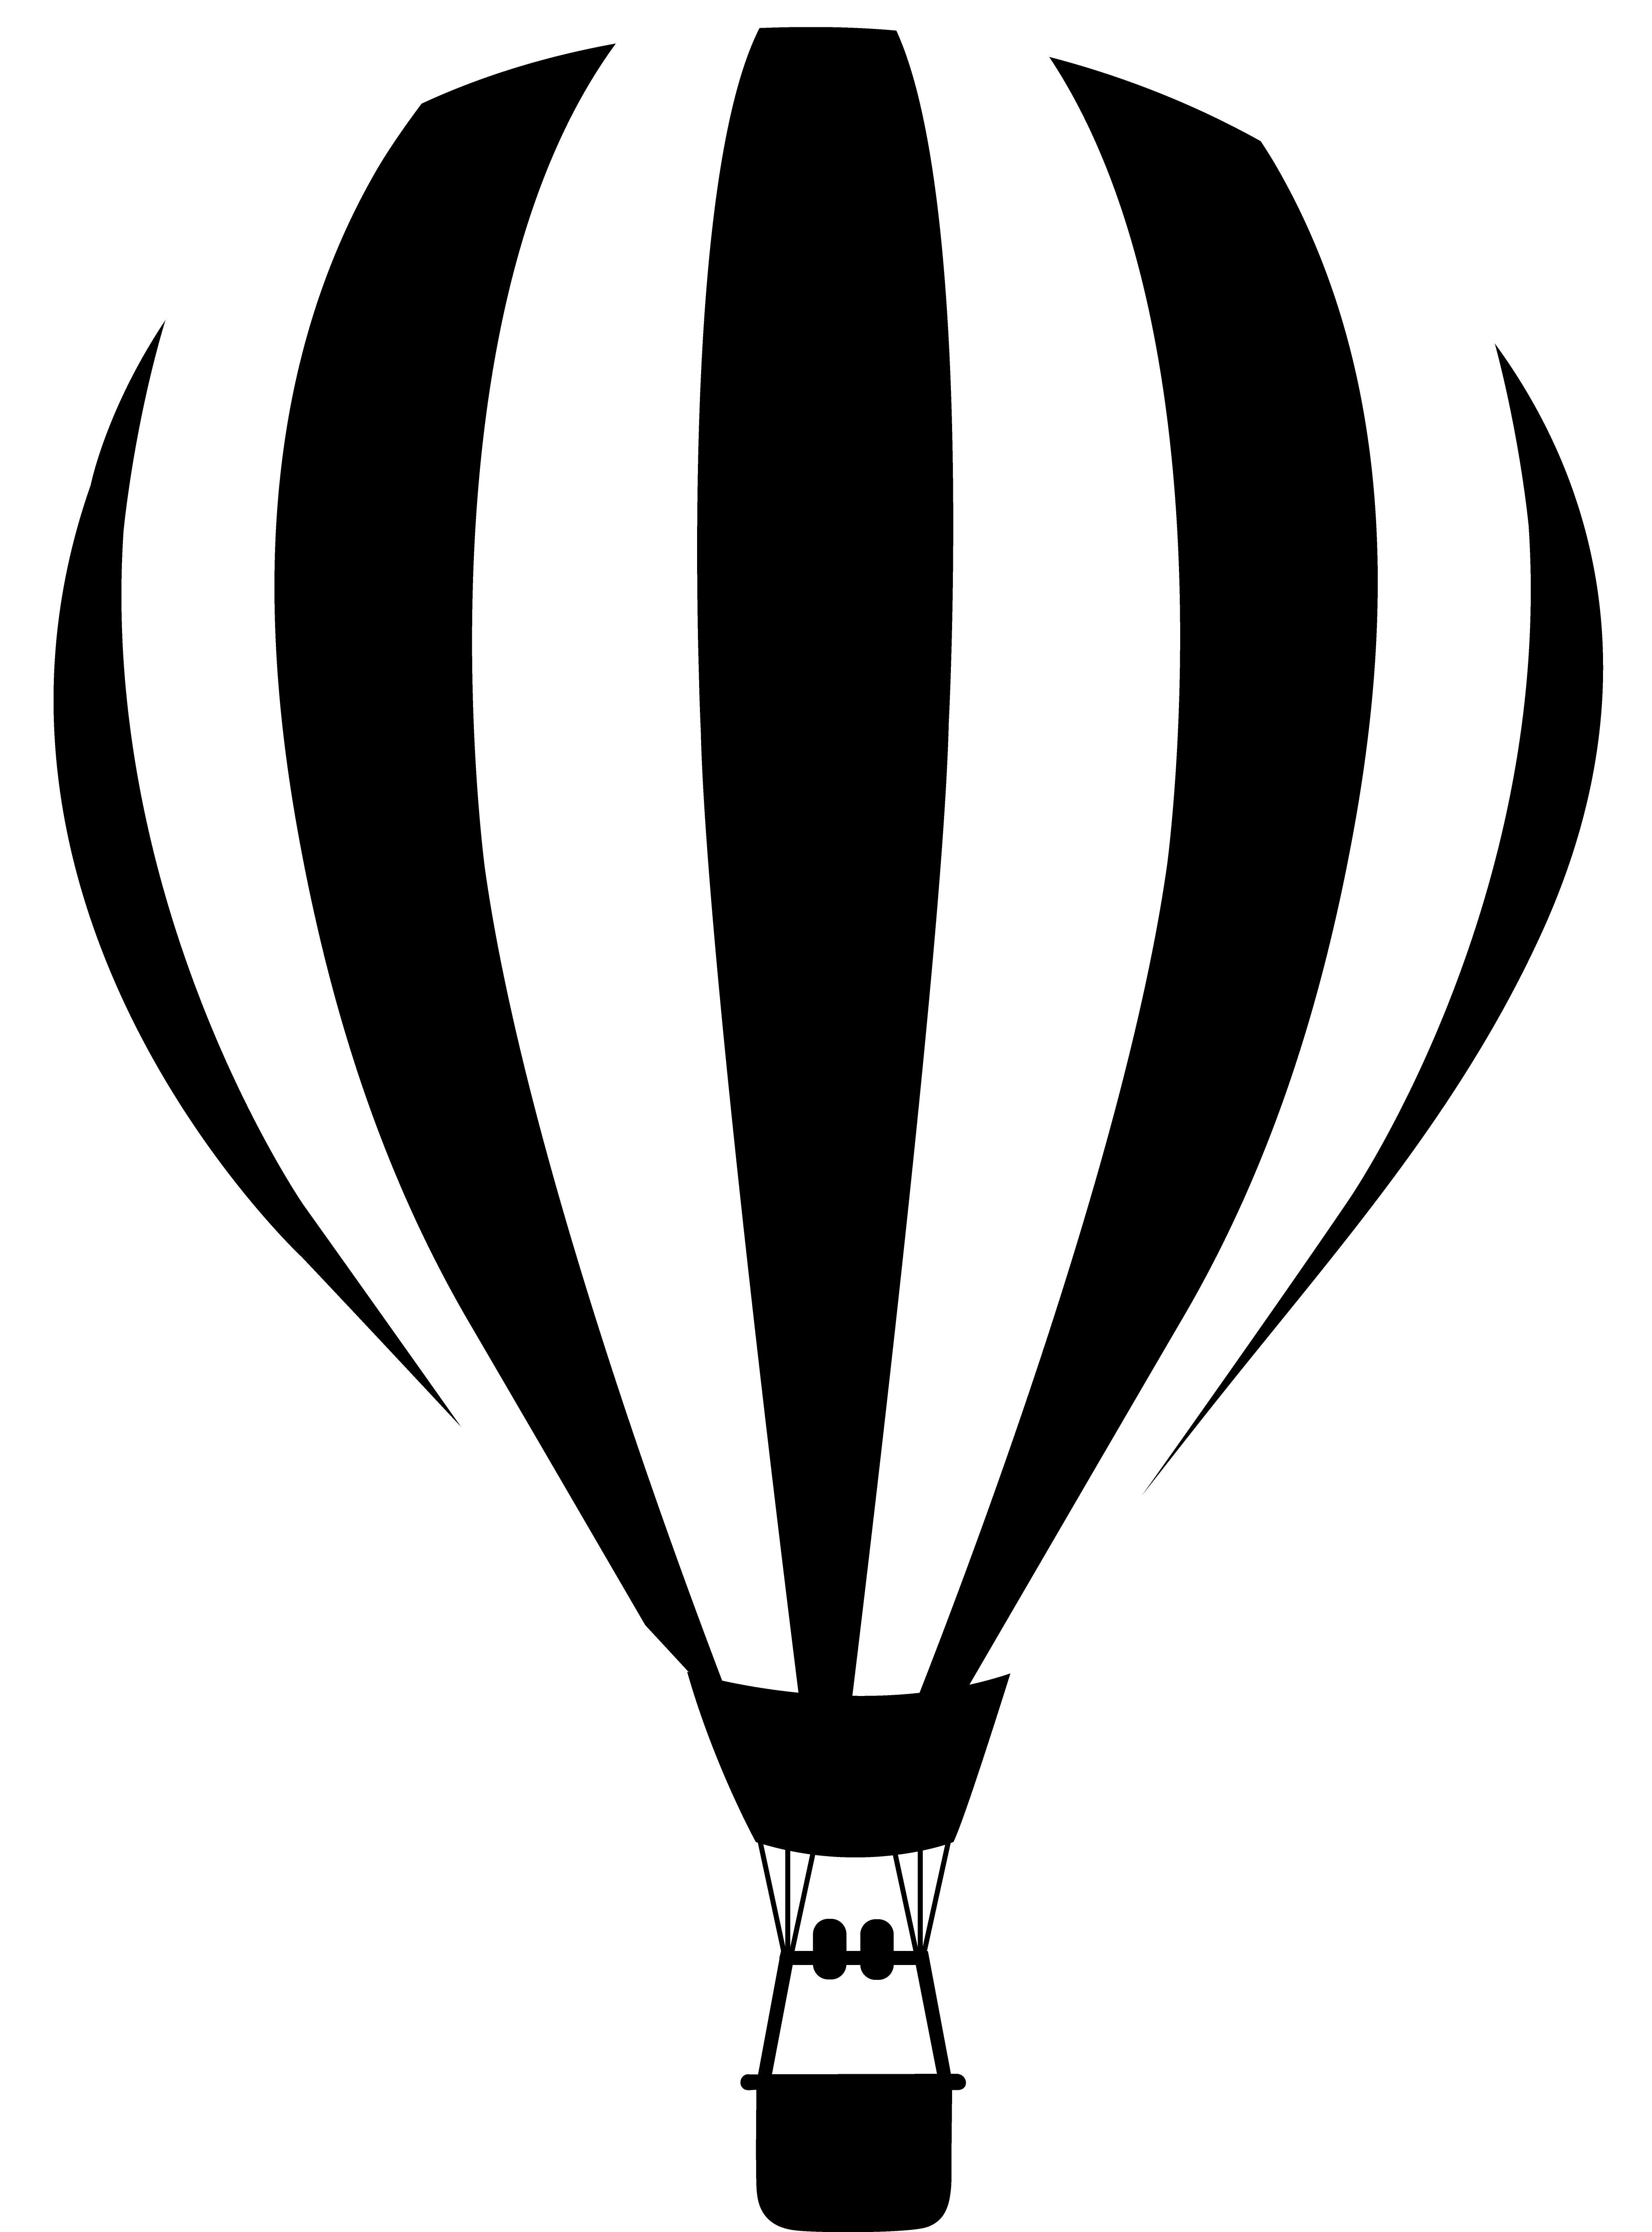 Hot air balloon silhouette png. Black and white images